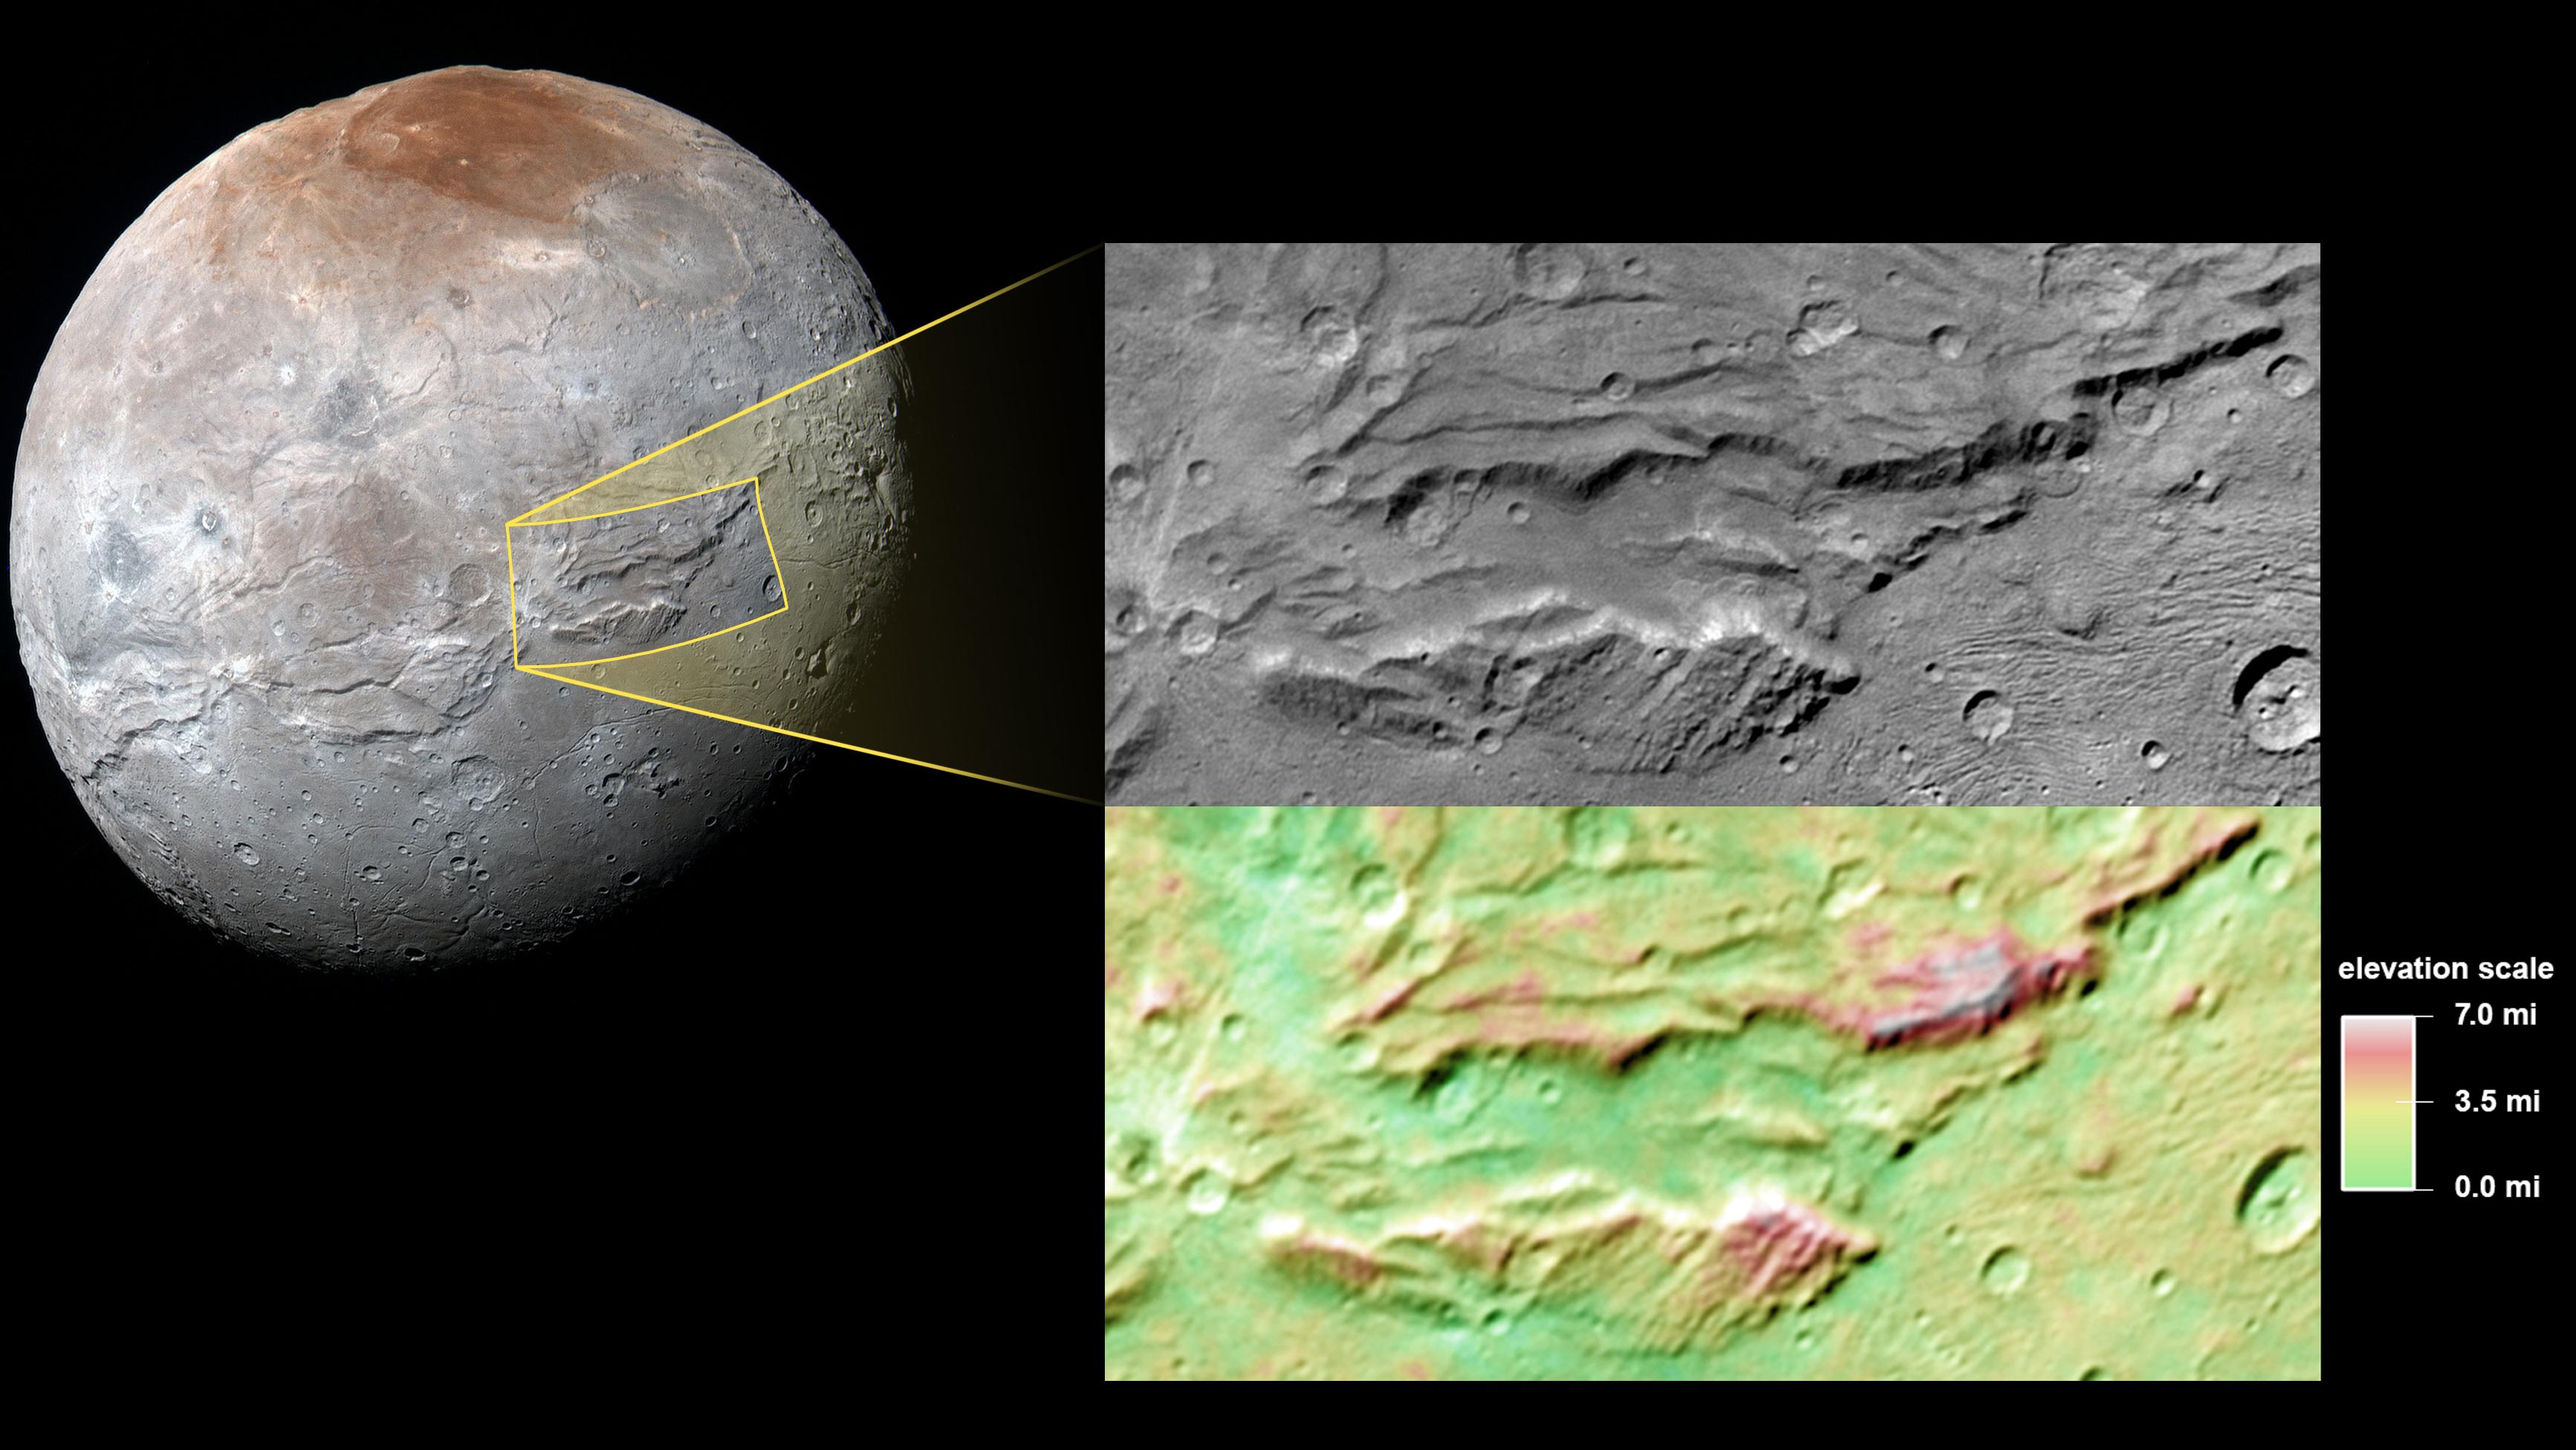 nh-charon_serenitychasma_context_02182016_melded.jpg